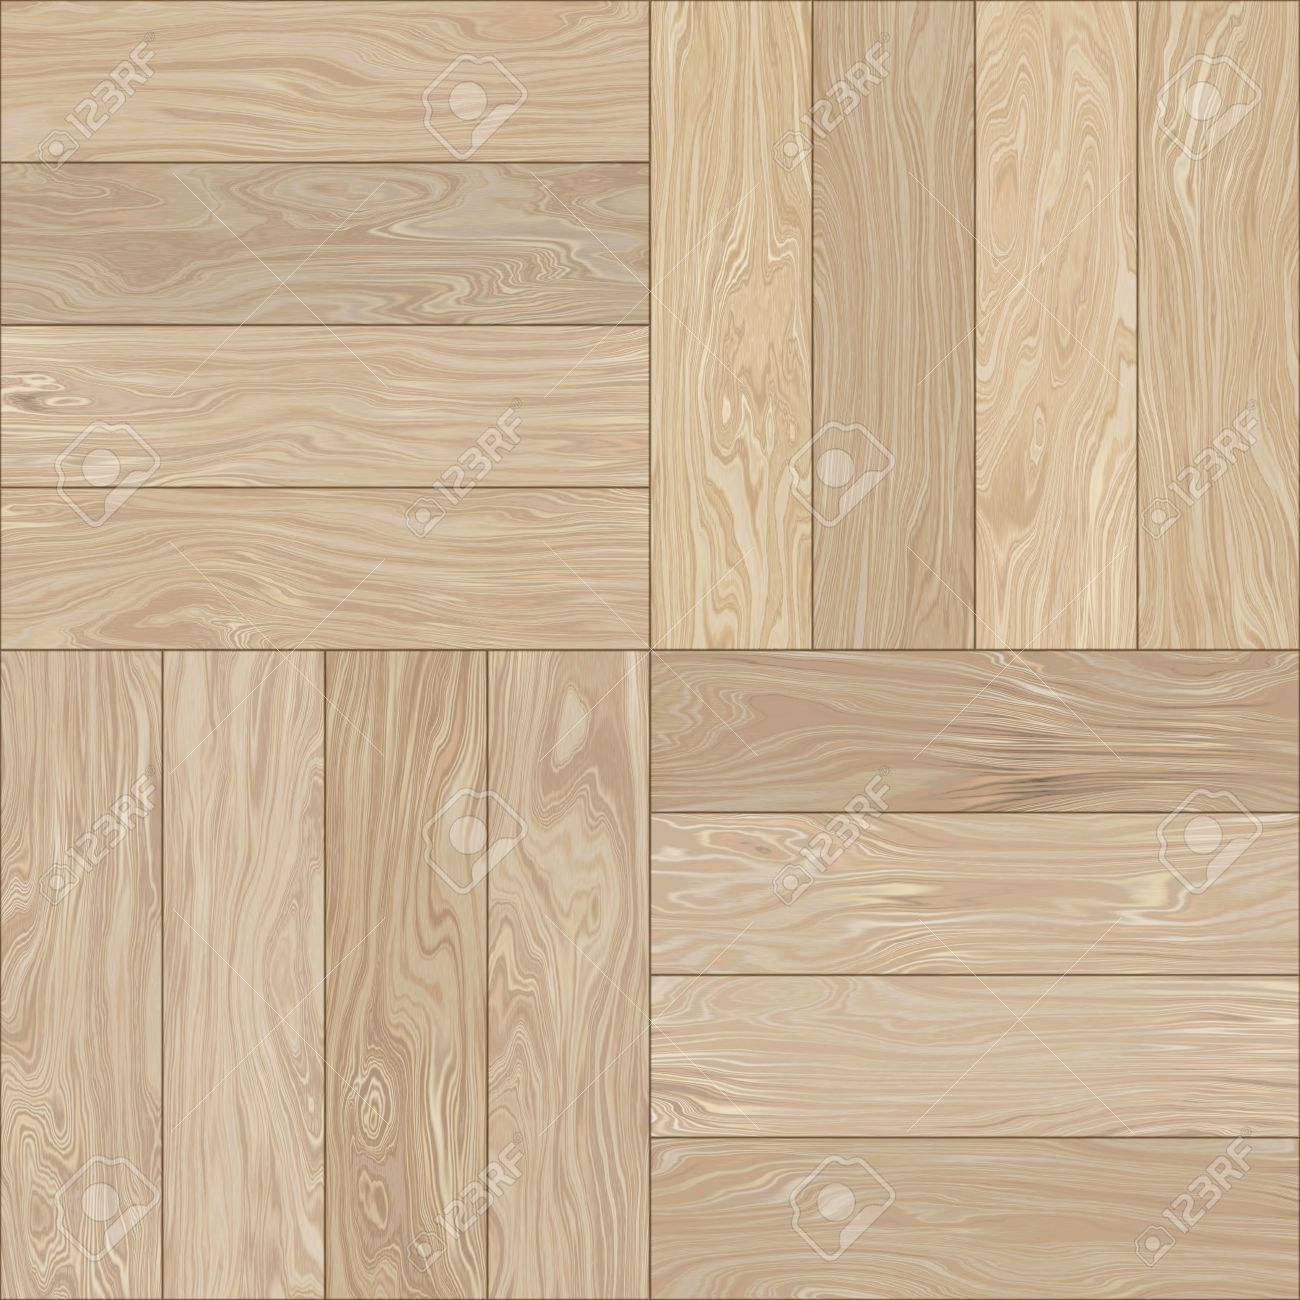 Wooden Texture Parquet Background Seamless Pattern Stock Photo